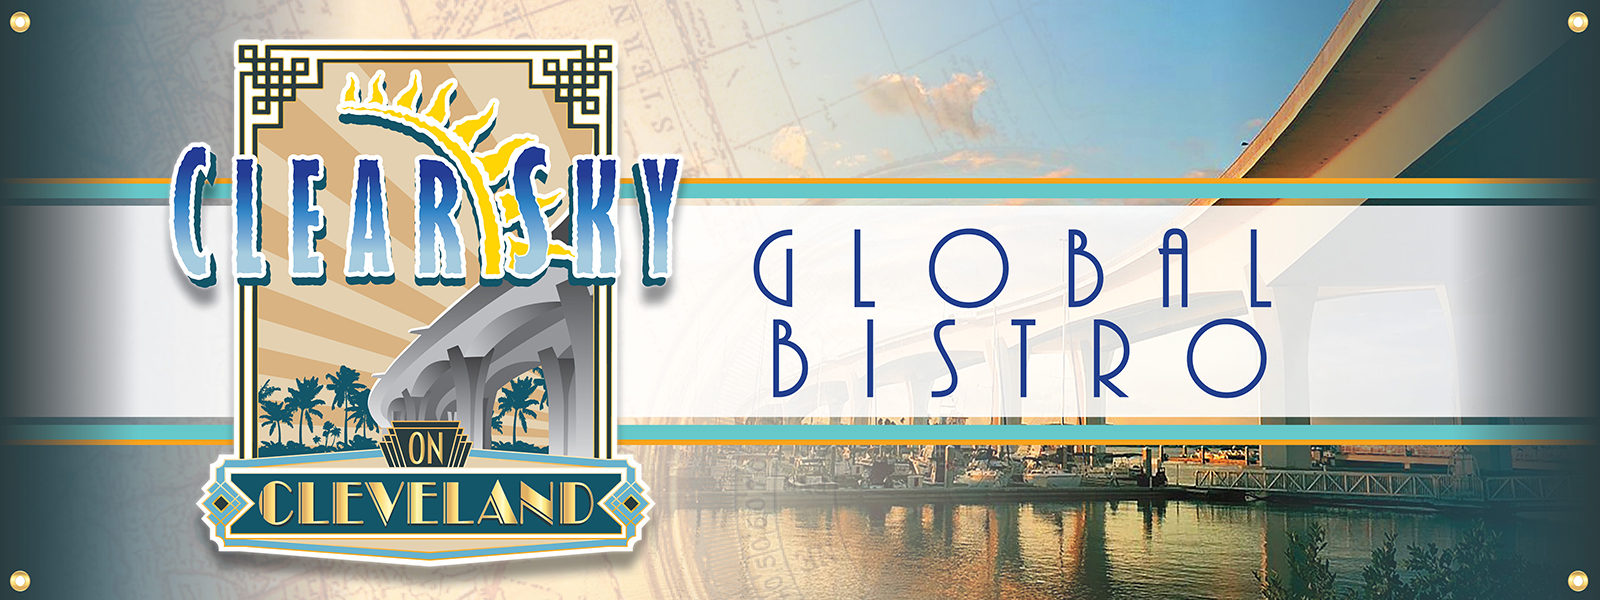 Clearsky cleveland_banner_small.jpg